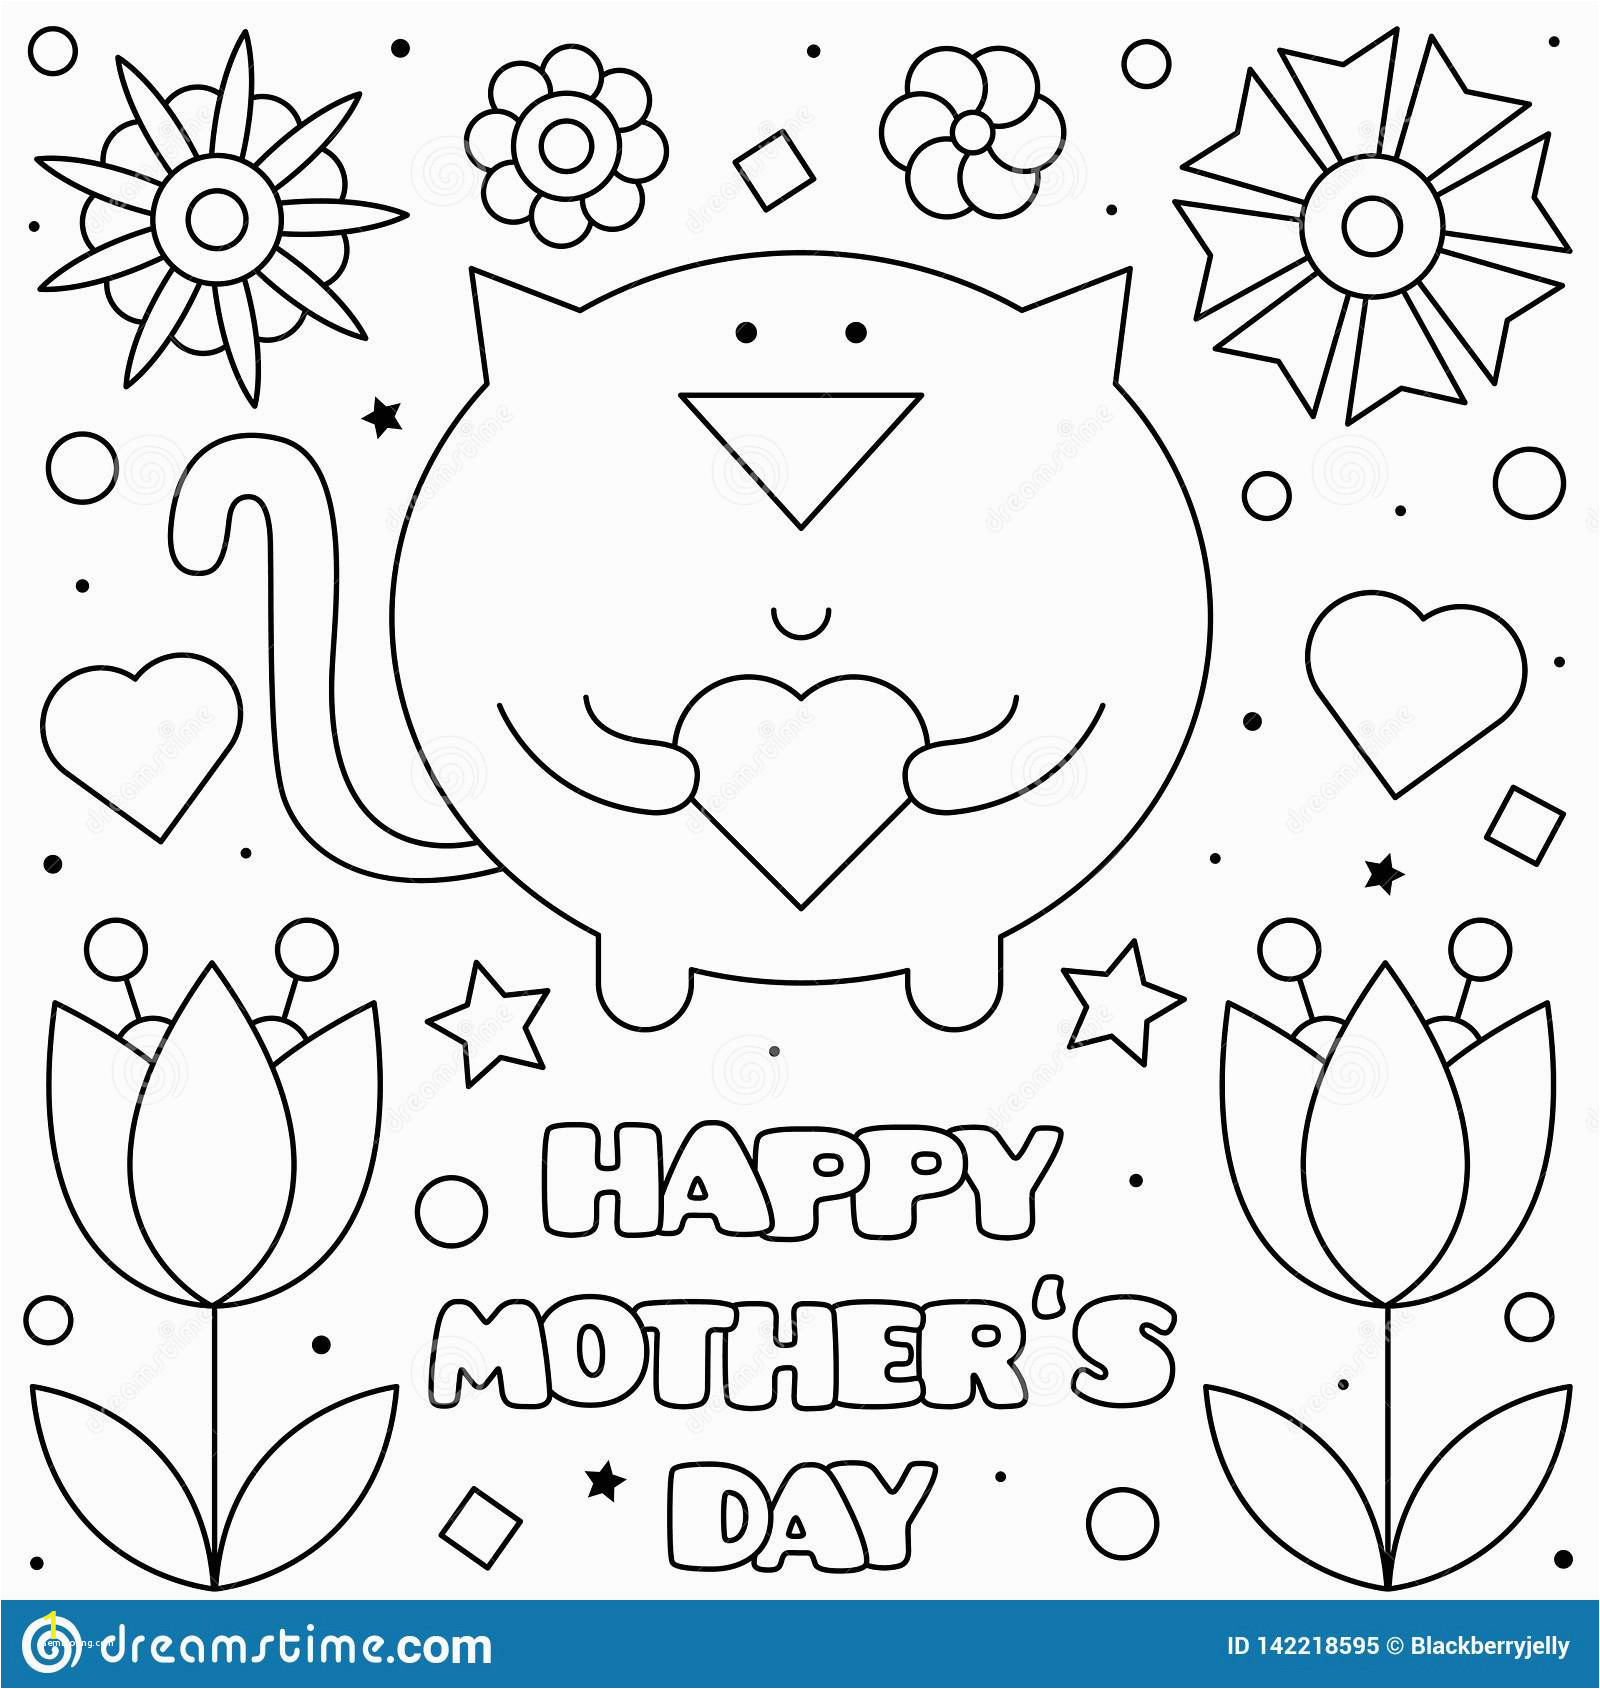 free printable love coloring pages for adults best of happy mothers day coloring page vector illustration cat of free printable love coloring pages for adults